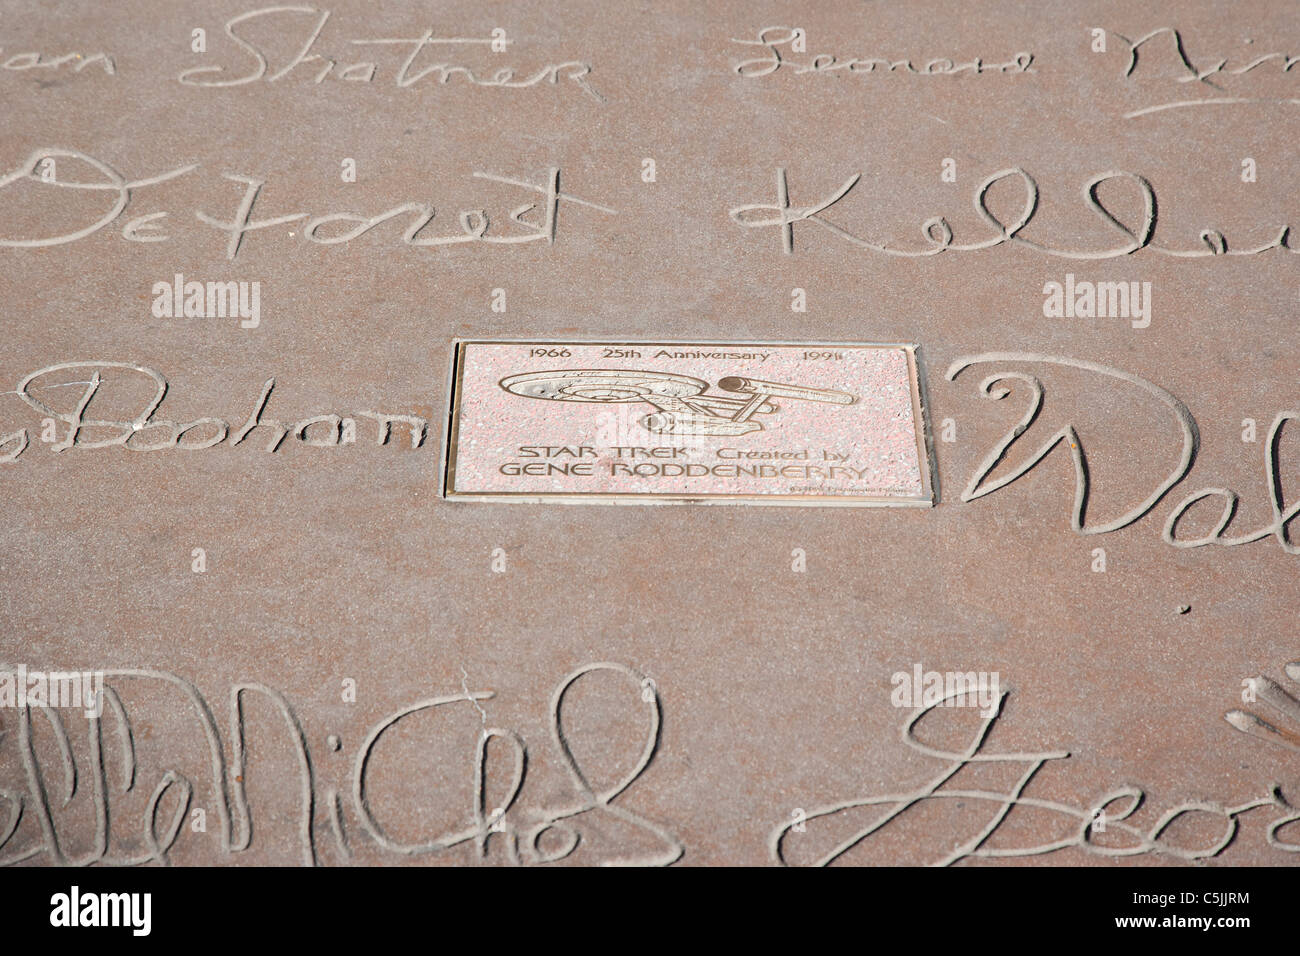 Star Trek stars hand and foot prints at Grauman's Chinese Theatre, Hollywood, Los Angeles, California, USA - Stock Image